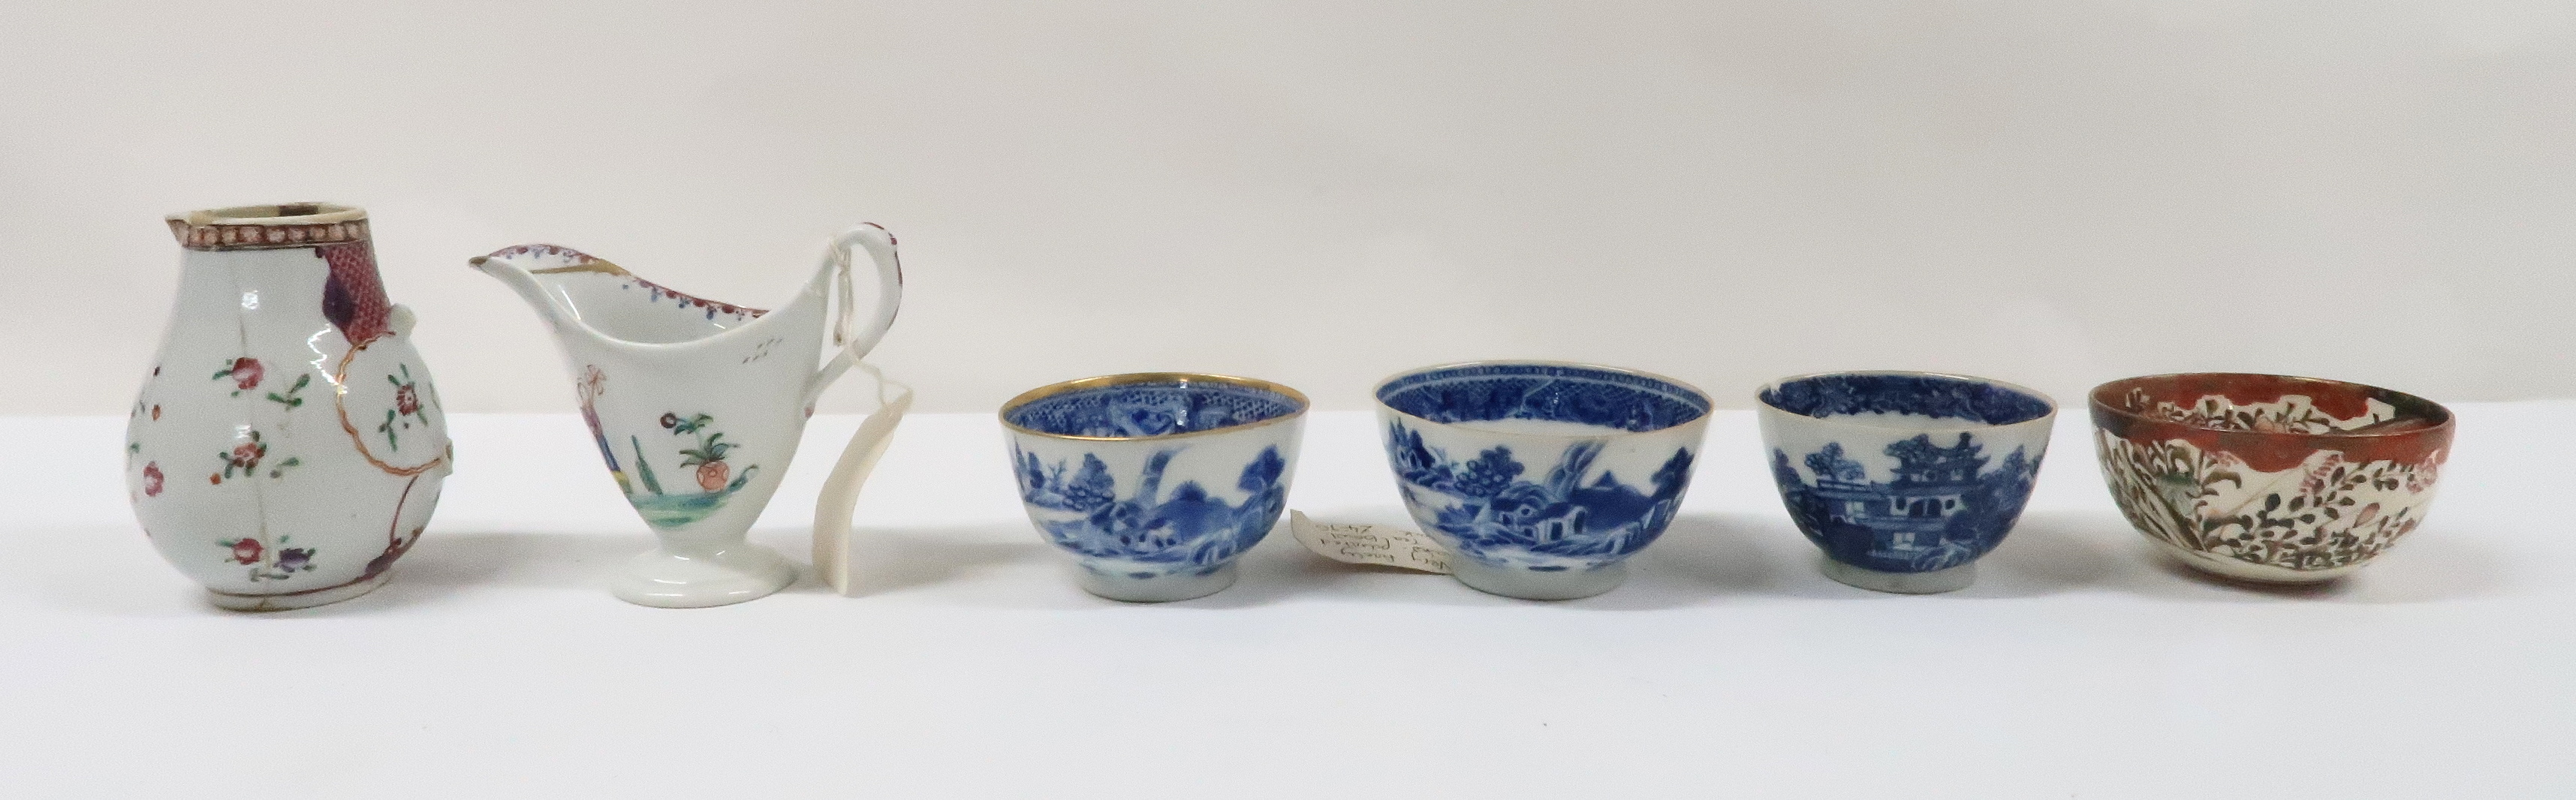 A COLLECTION OF CHINESE EXPORT TEAWARES and others including famille rose, Chien Lung, blue and - Image 8 of 22